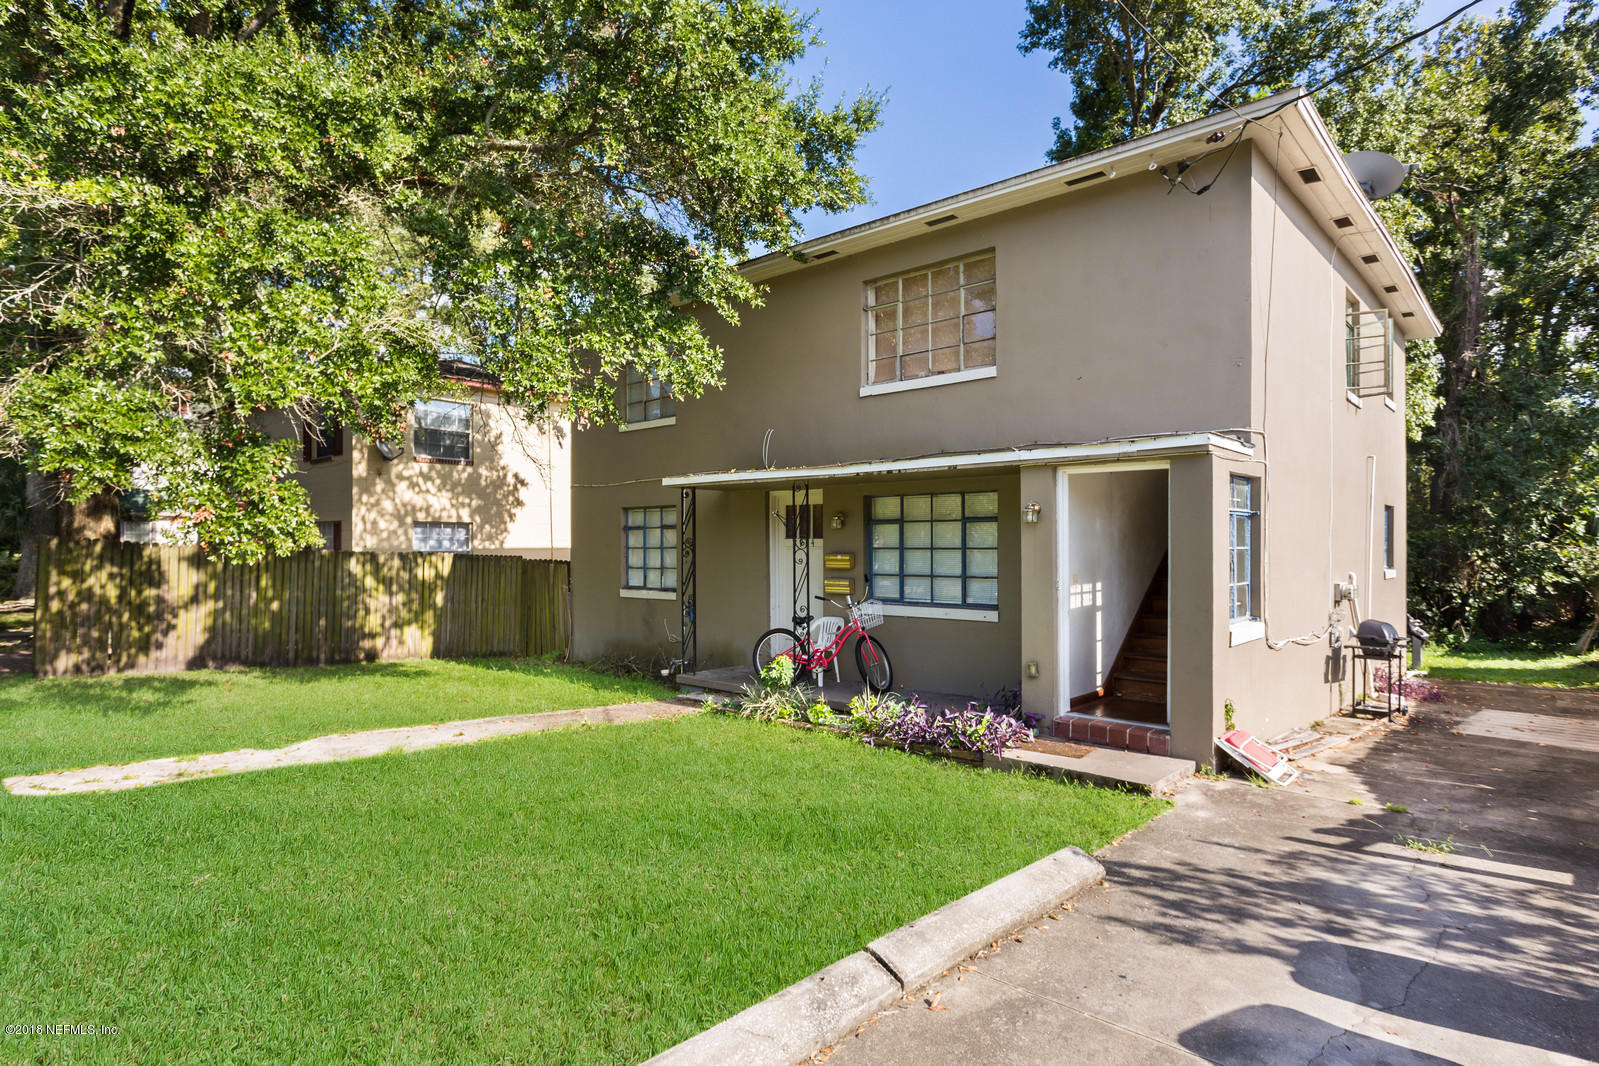 2964 DOWNING, JACKSONVILLE, FLORIDA 32205, 4 Bedrooms Bedrooms, ,2 BathroomsBathrooms,Multi family,For sale,DOWNING,960597